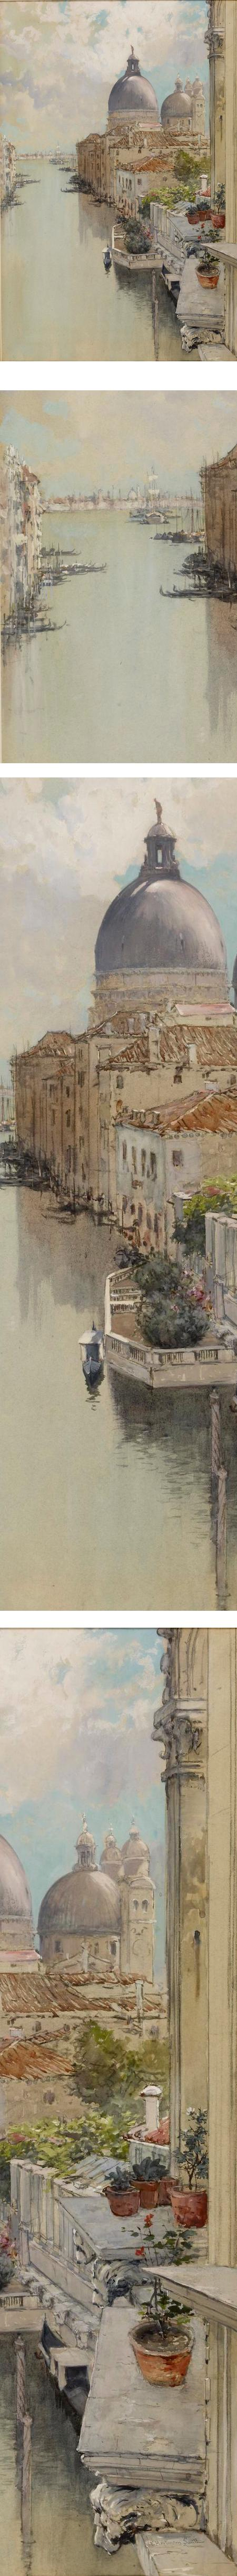 Over a Balcony, View of the Grand Canal, Venice; Francis Hopkinson Smith watercolor